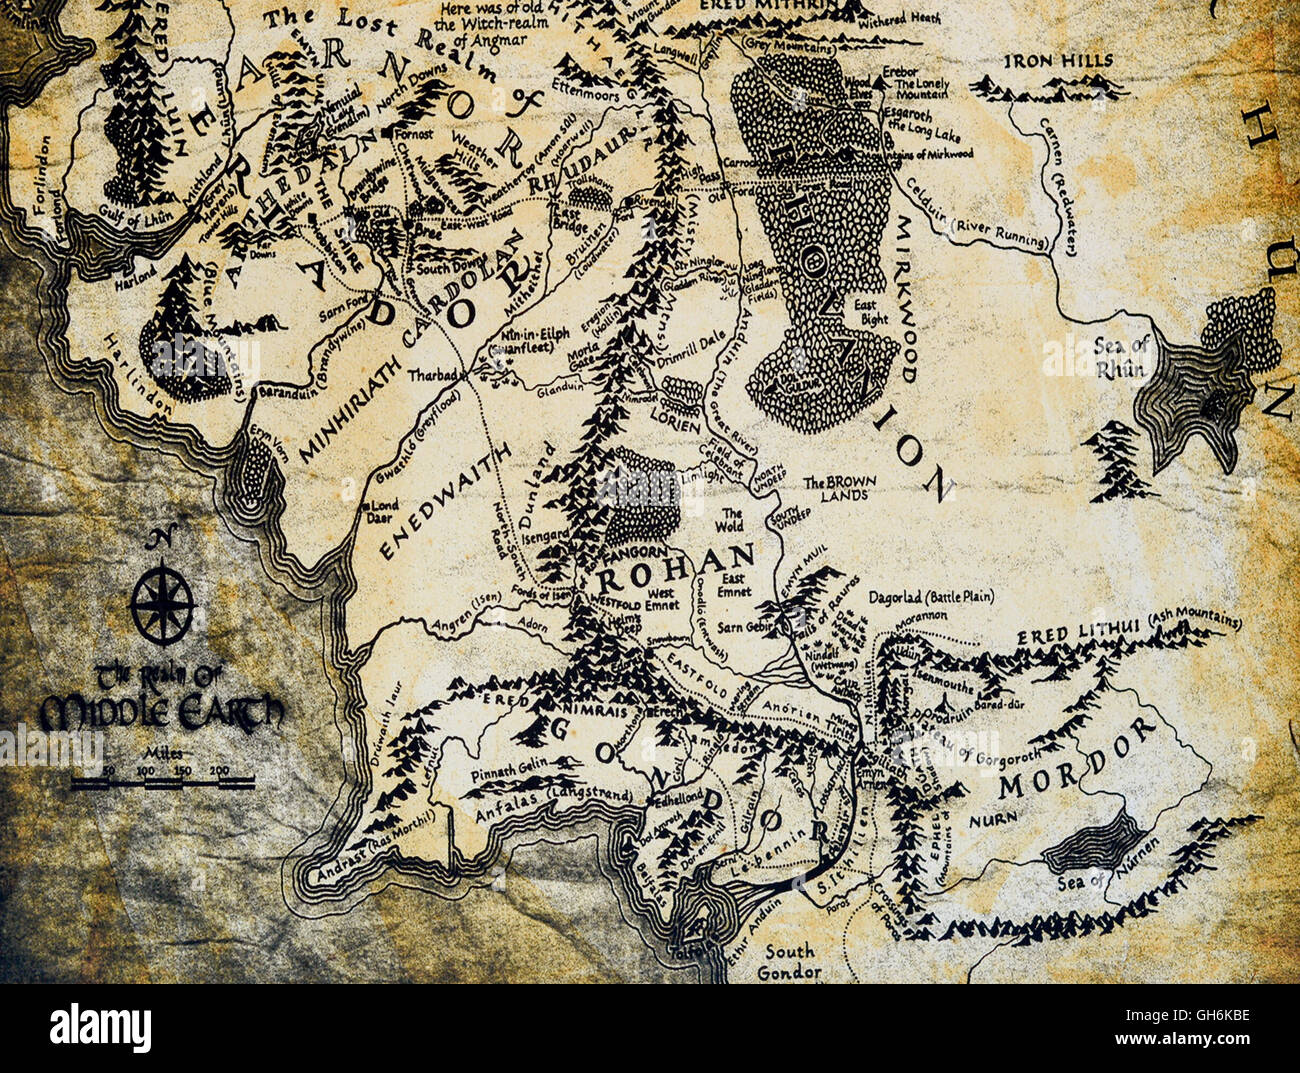 Map of Middle Earth from the Lord